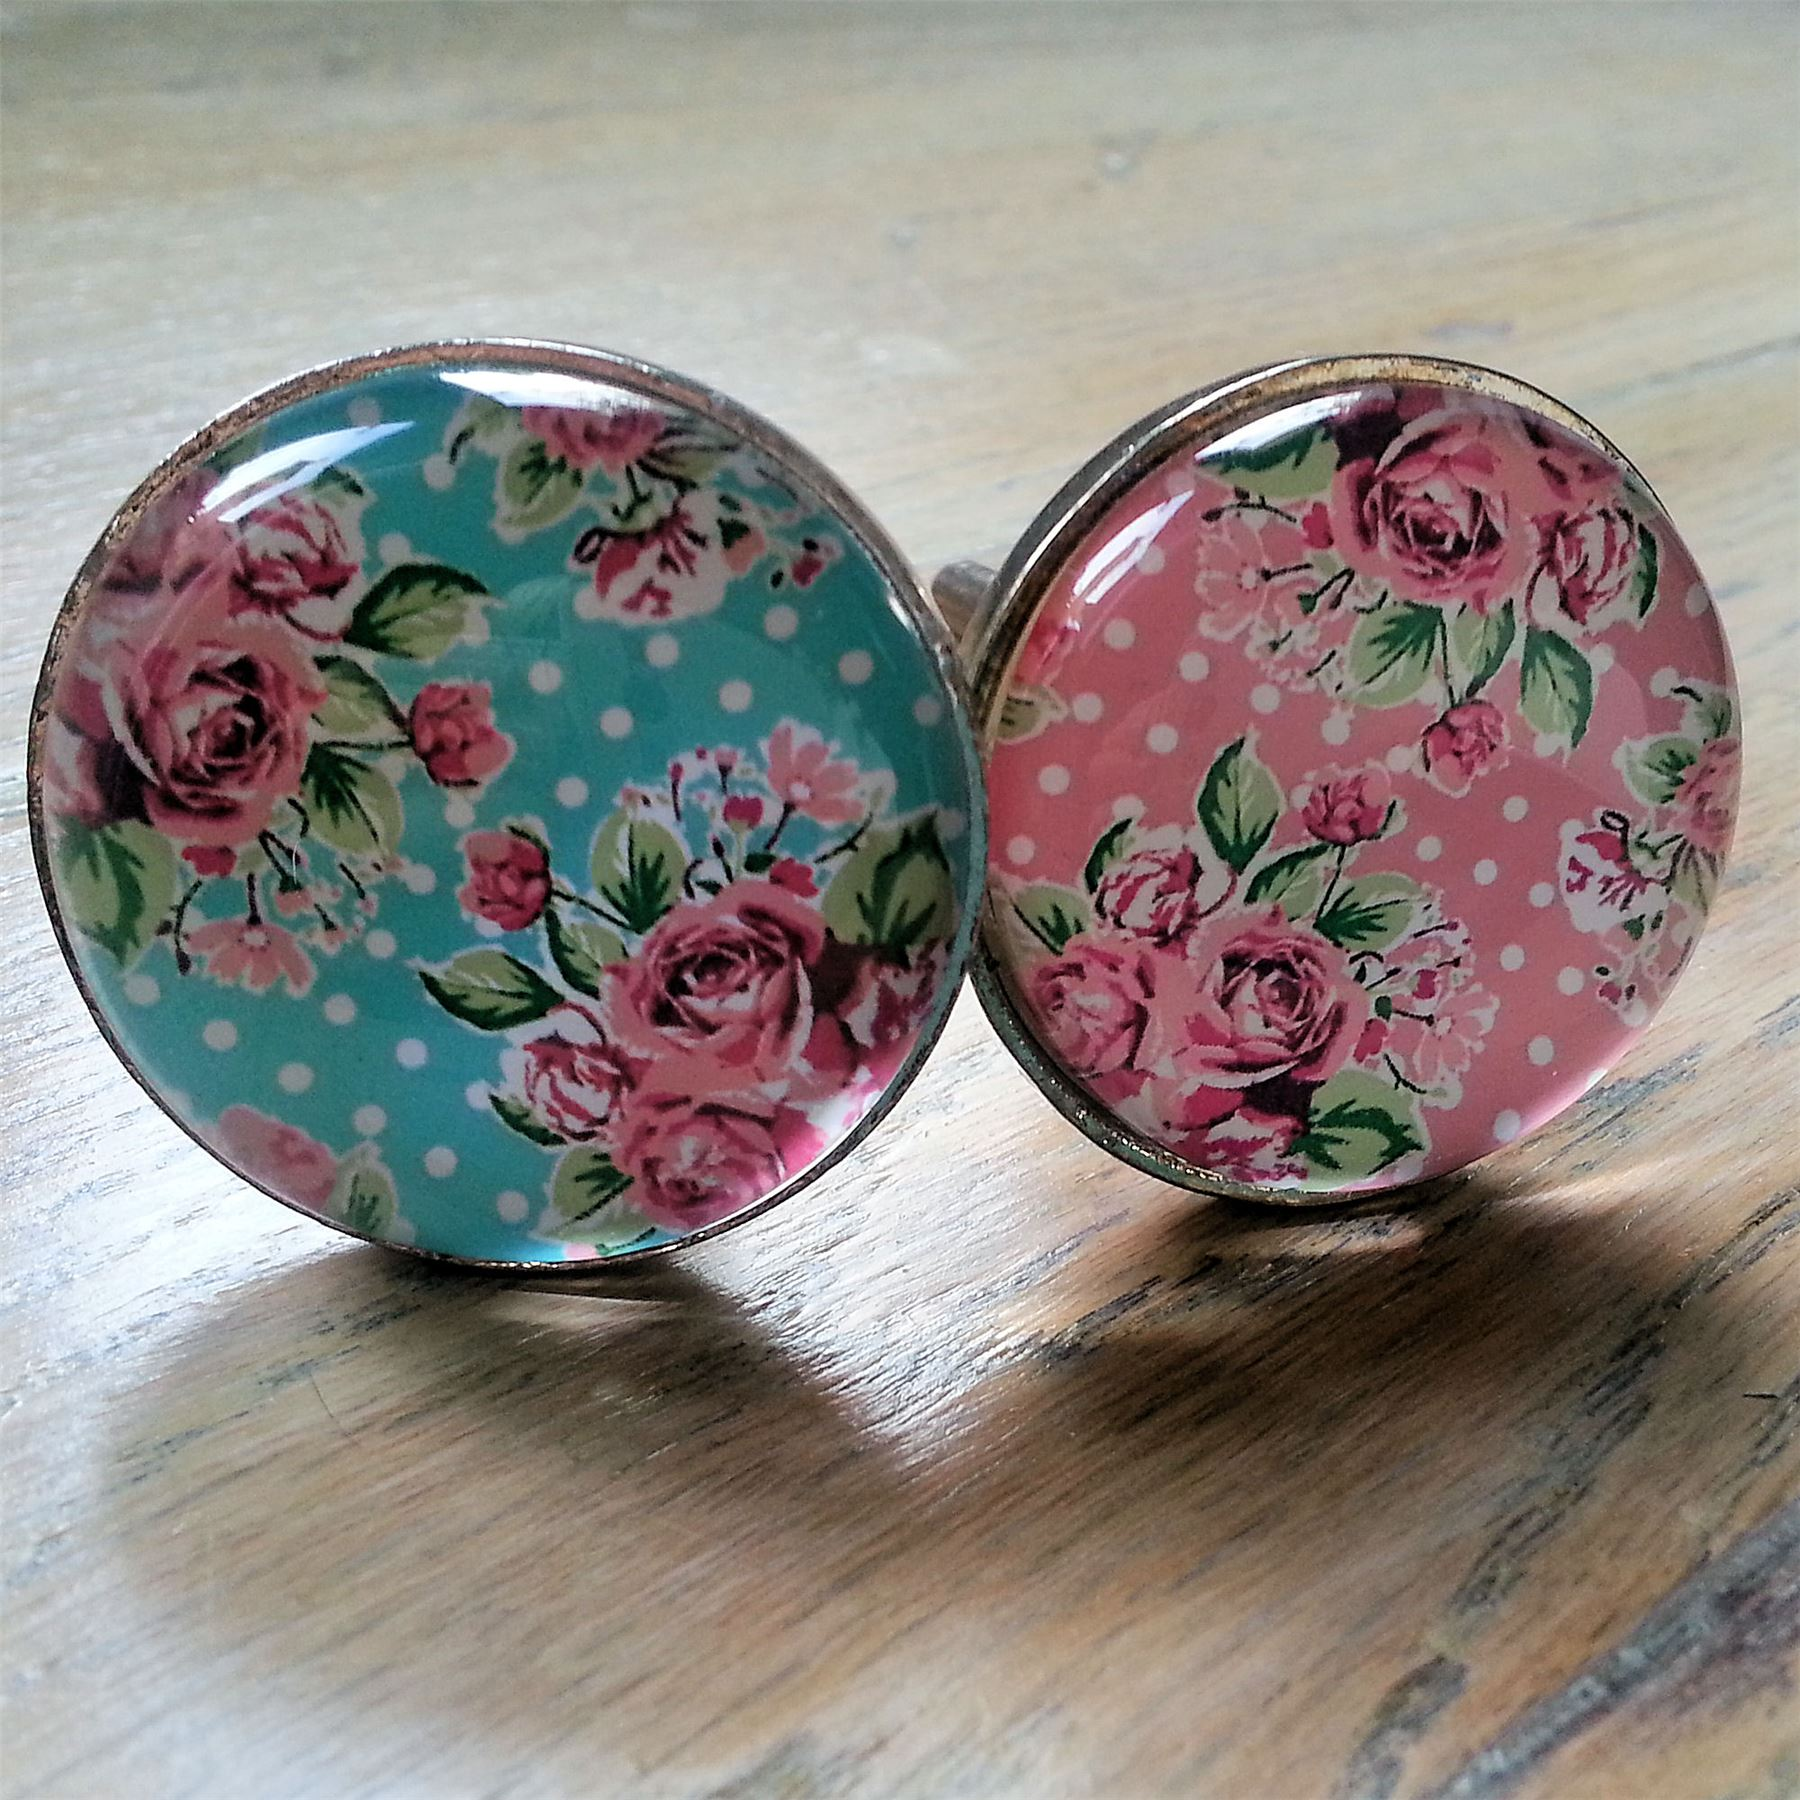 Vintage glass knobs furniture drawer pulls handles shabby roses chic pink blue ebay Glass furniture pulls